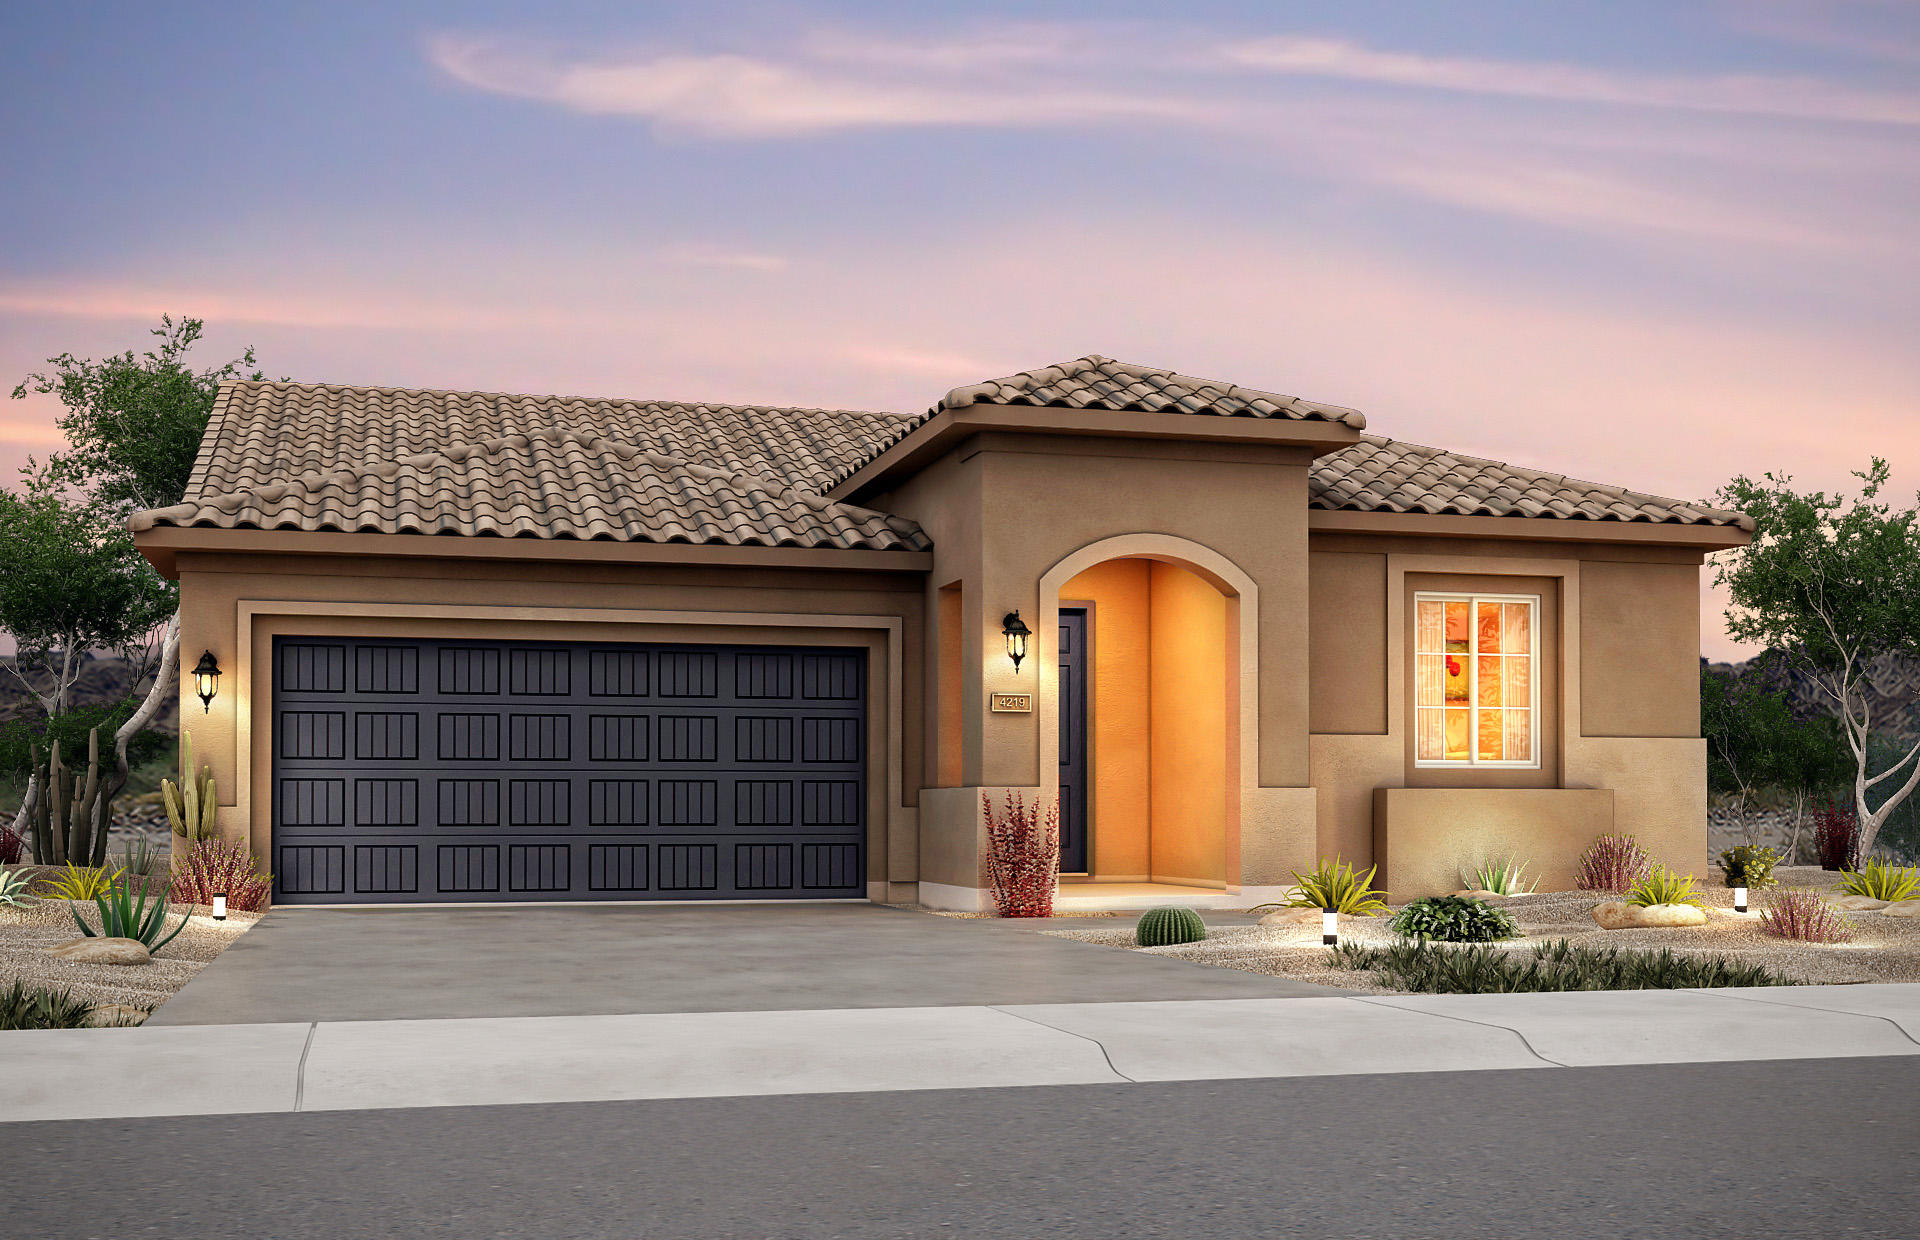 Preserve floorplan in premier 55+ active adult gated community. Amenities include a junior Olympic size pool, spa, fitness, sports courts, trails & more!  Home features include a den, tile shower, chef kitchen, quartz counters, wood looking tile floors, interior fireplace and so much more!